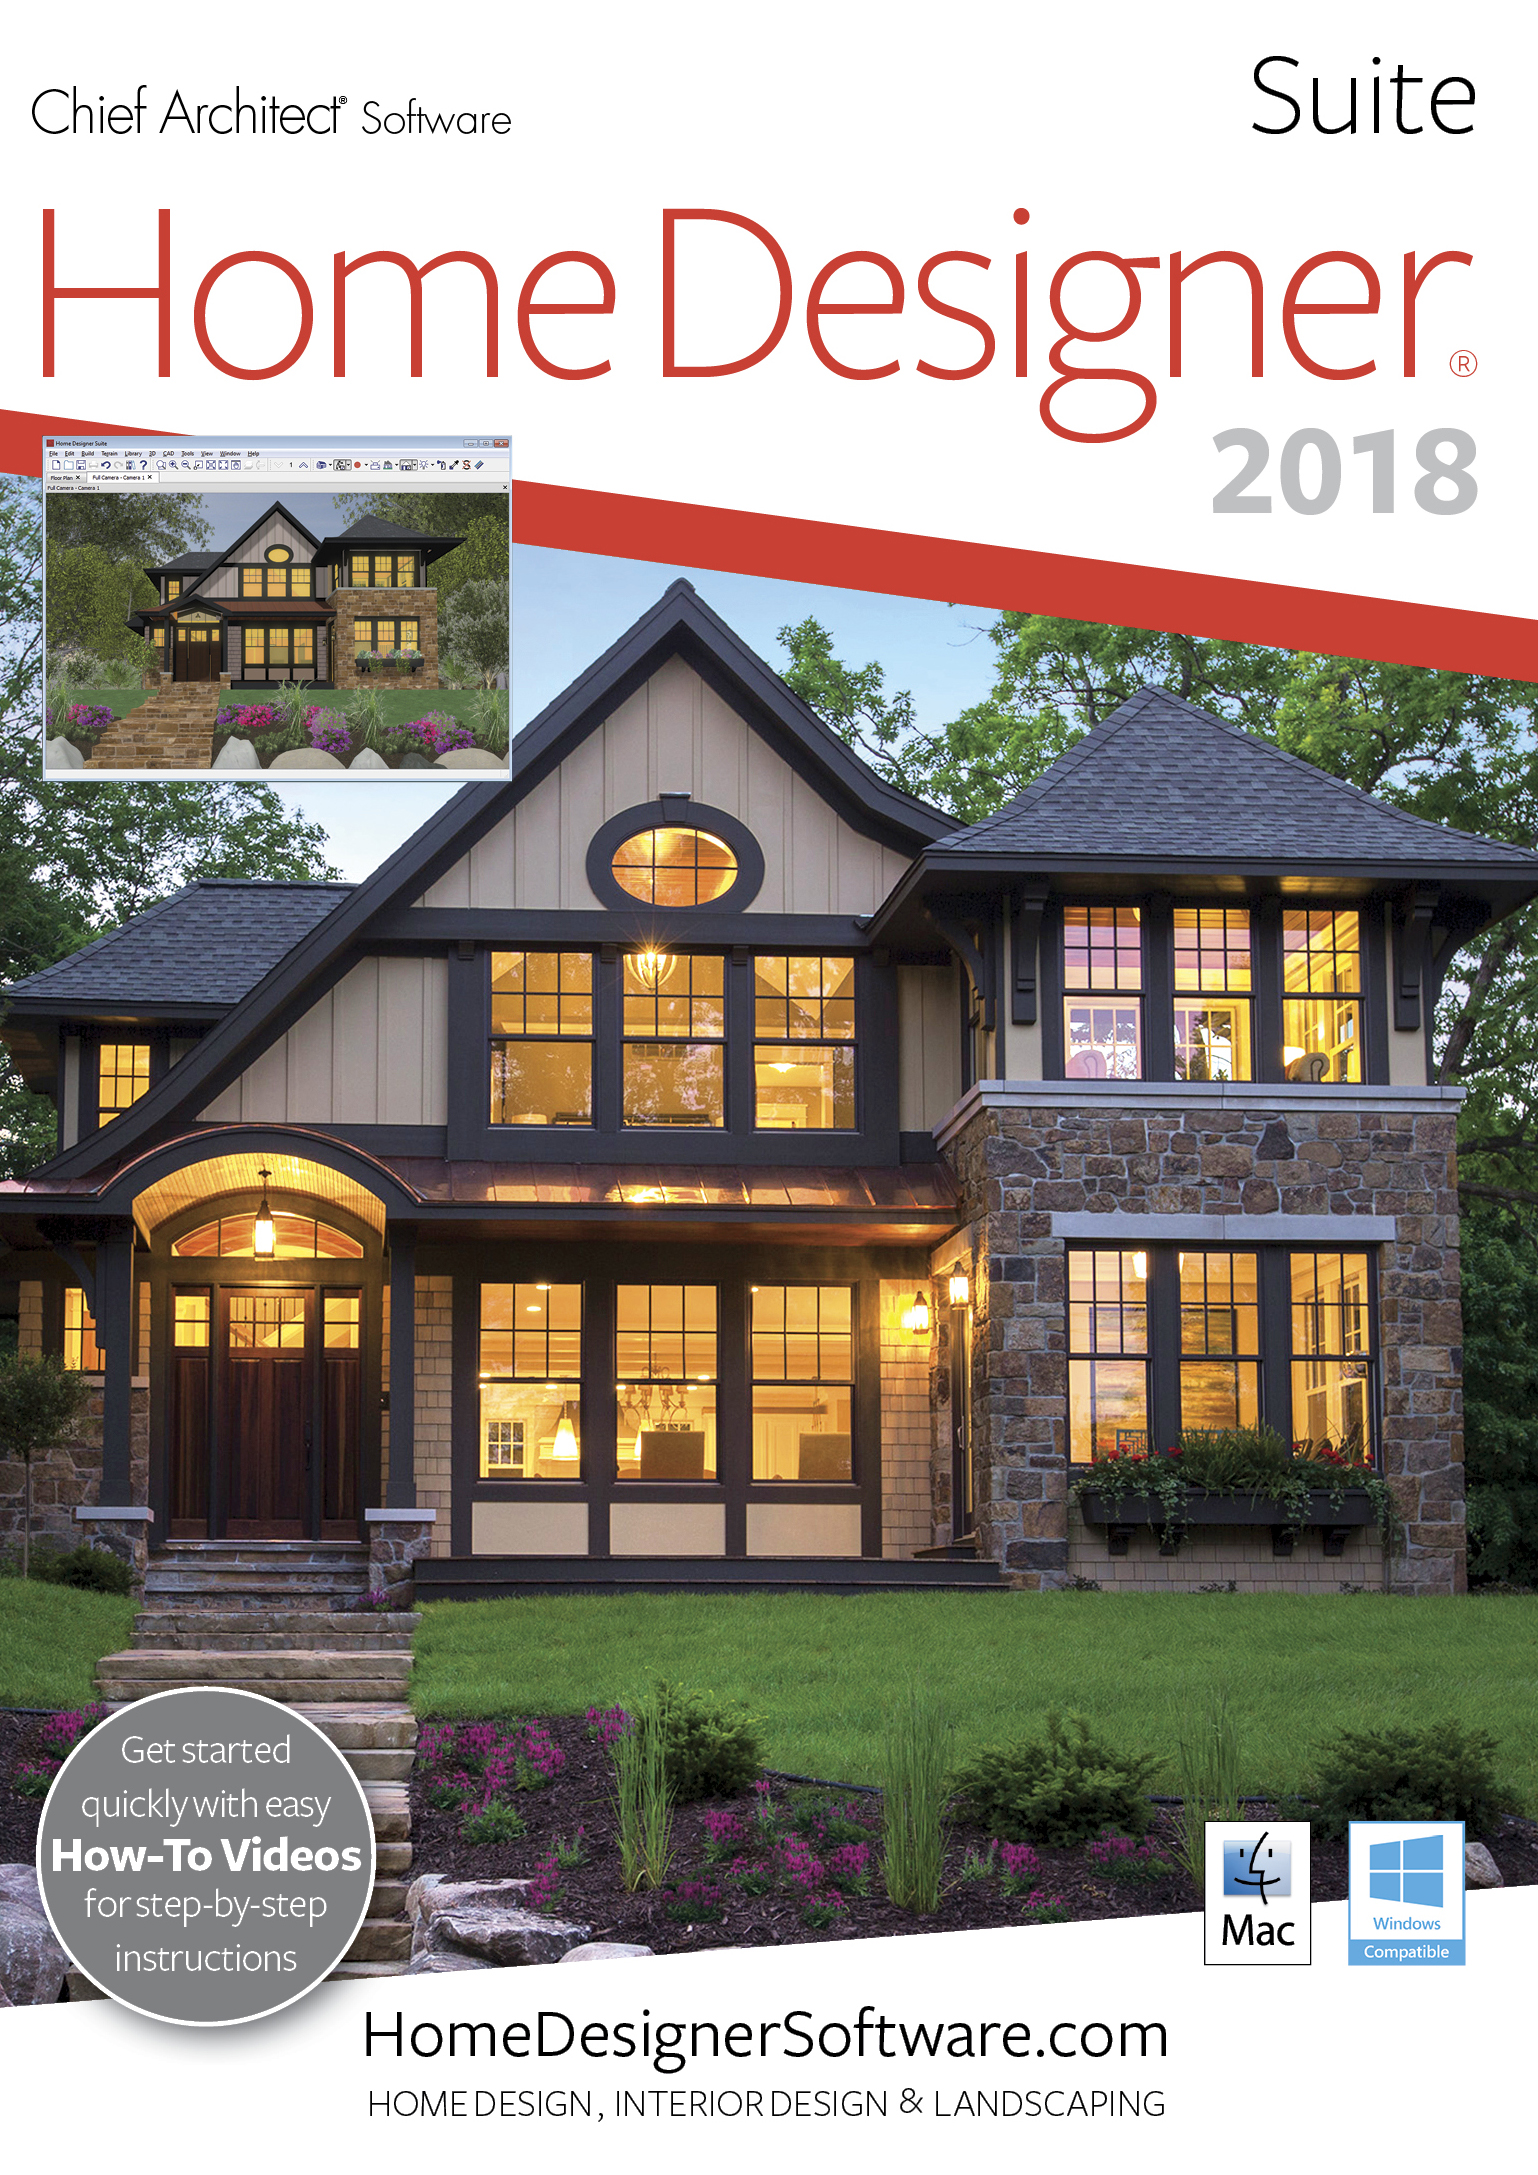 Home Designer Suite 2018 - PC Download [Téléchargement]